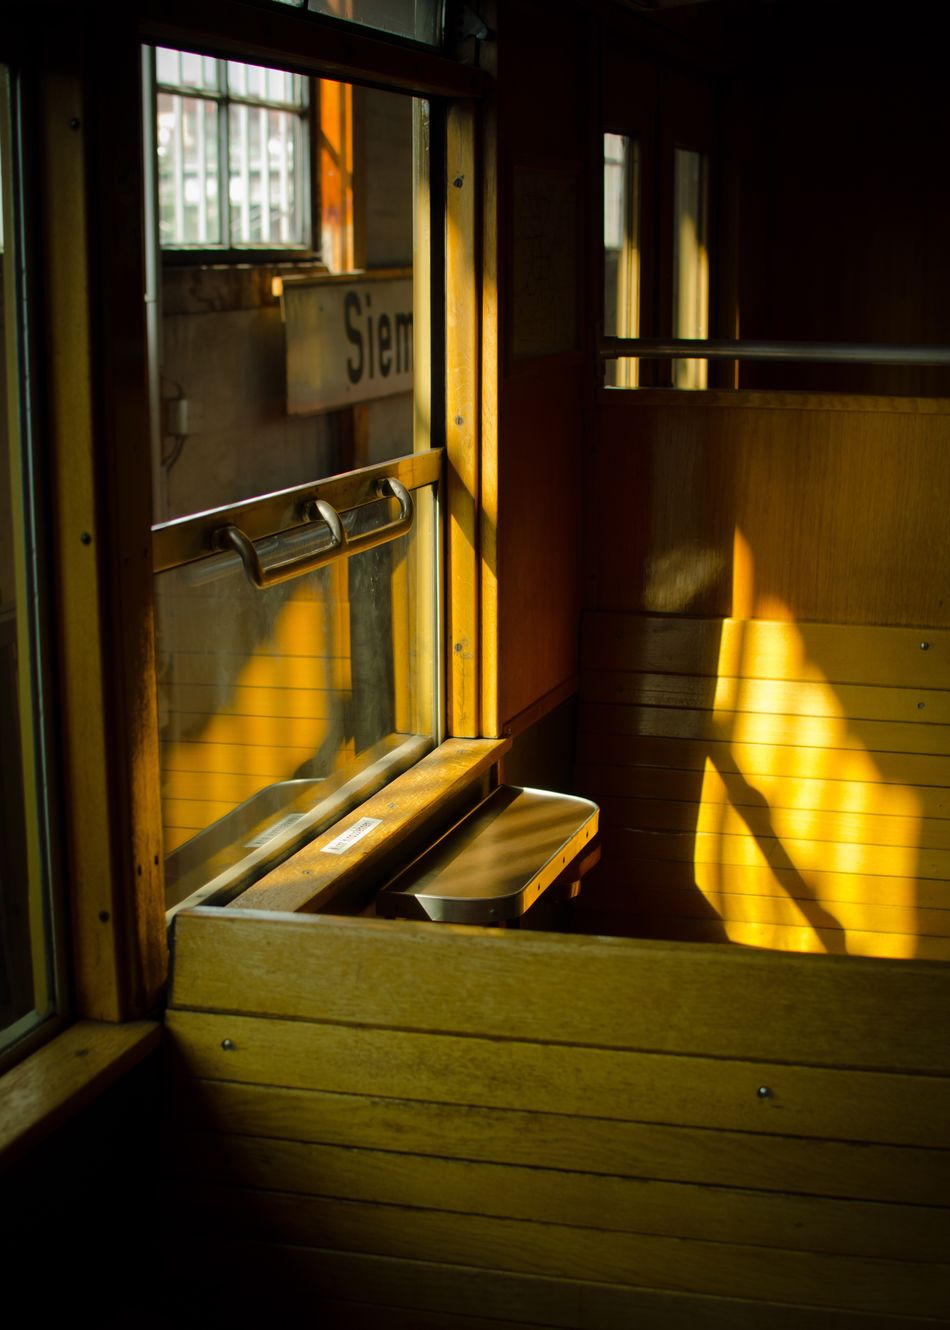 My Eyes My Berlin Windows Transportation Film Train - Vehicle Still Life Urban Exploration Urban Geometry Stillness In Time Fine Art The City Light